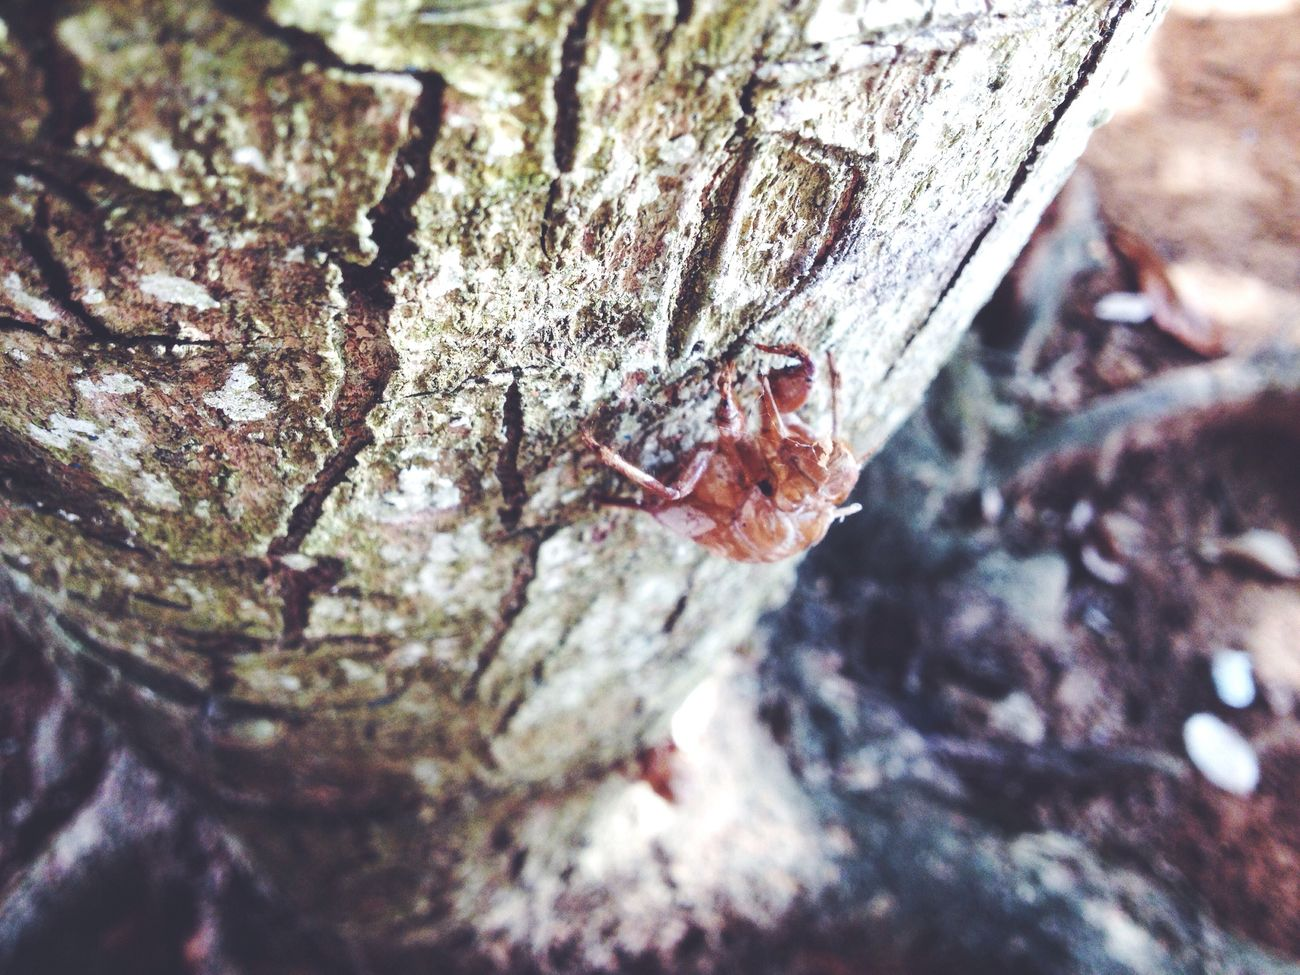 Nature Me Enquanto cigarras cantam cigarros queimas seus pulmões 🌬 EyeEm Nature Lover EyeEm Gallery First Eyeem Photo Popular Photos Save The Nature Love ♥ Talking Pictures Just Ride Vscocam Live To Learn Photography Colors IPhone Art IPhone Photography Colorful